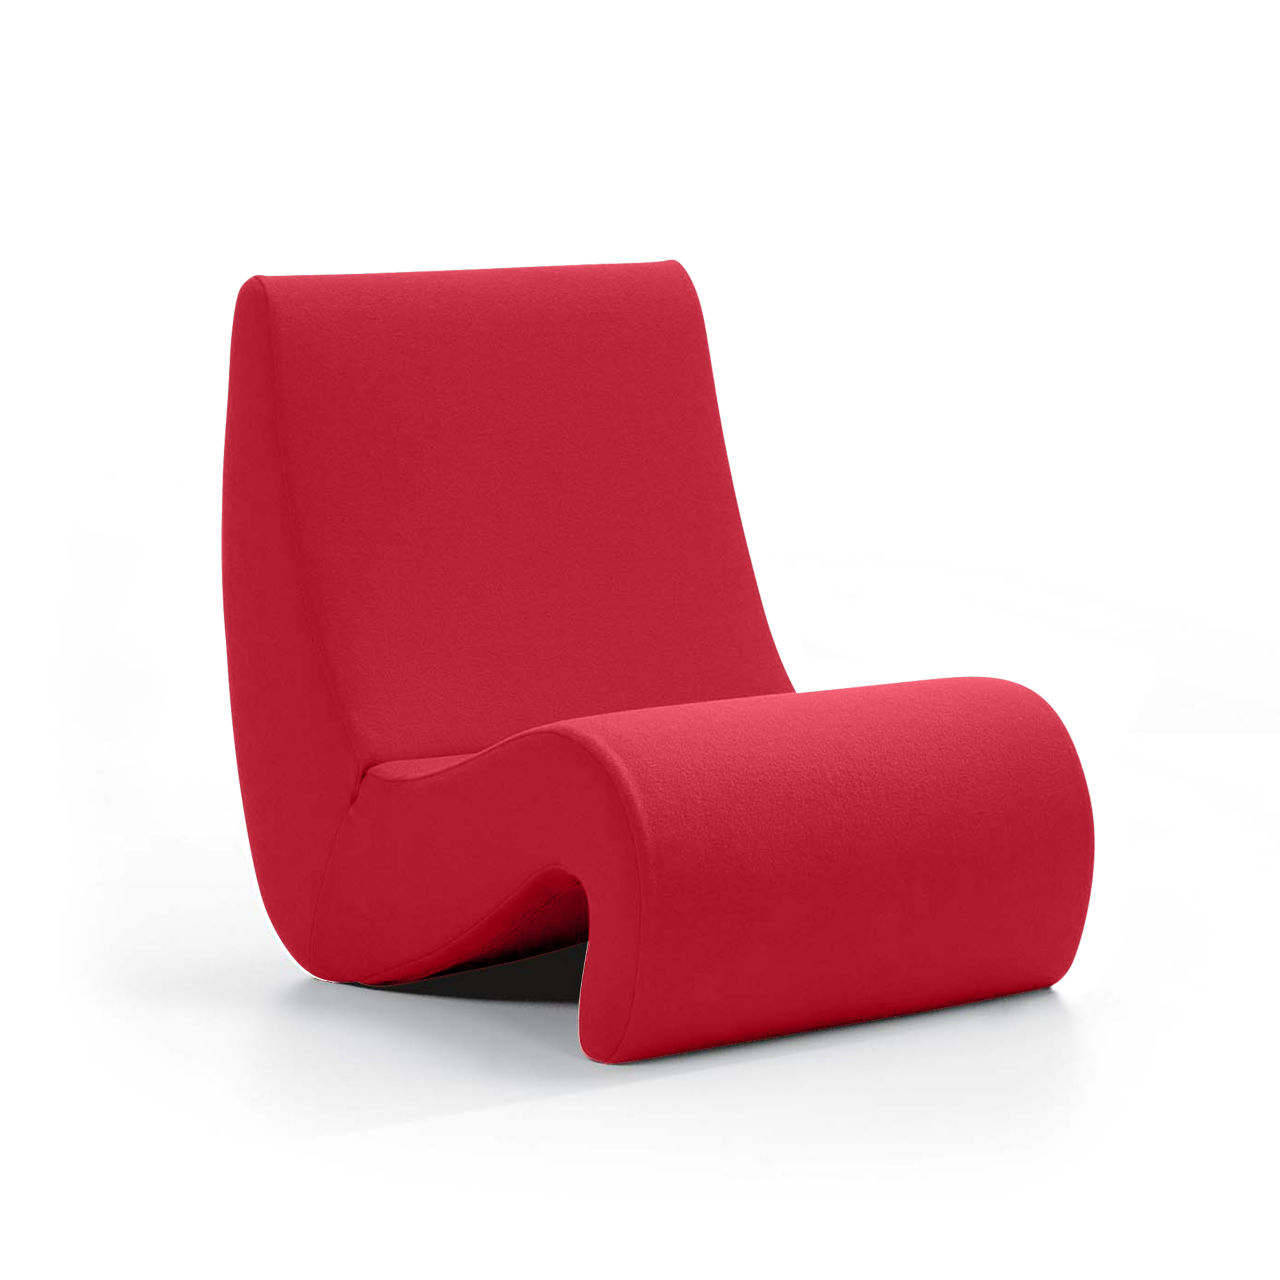 Amoebe Chair in Red Lowback by Vitra